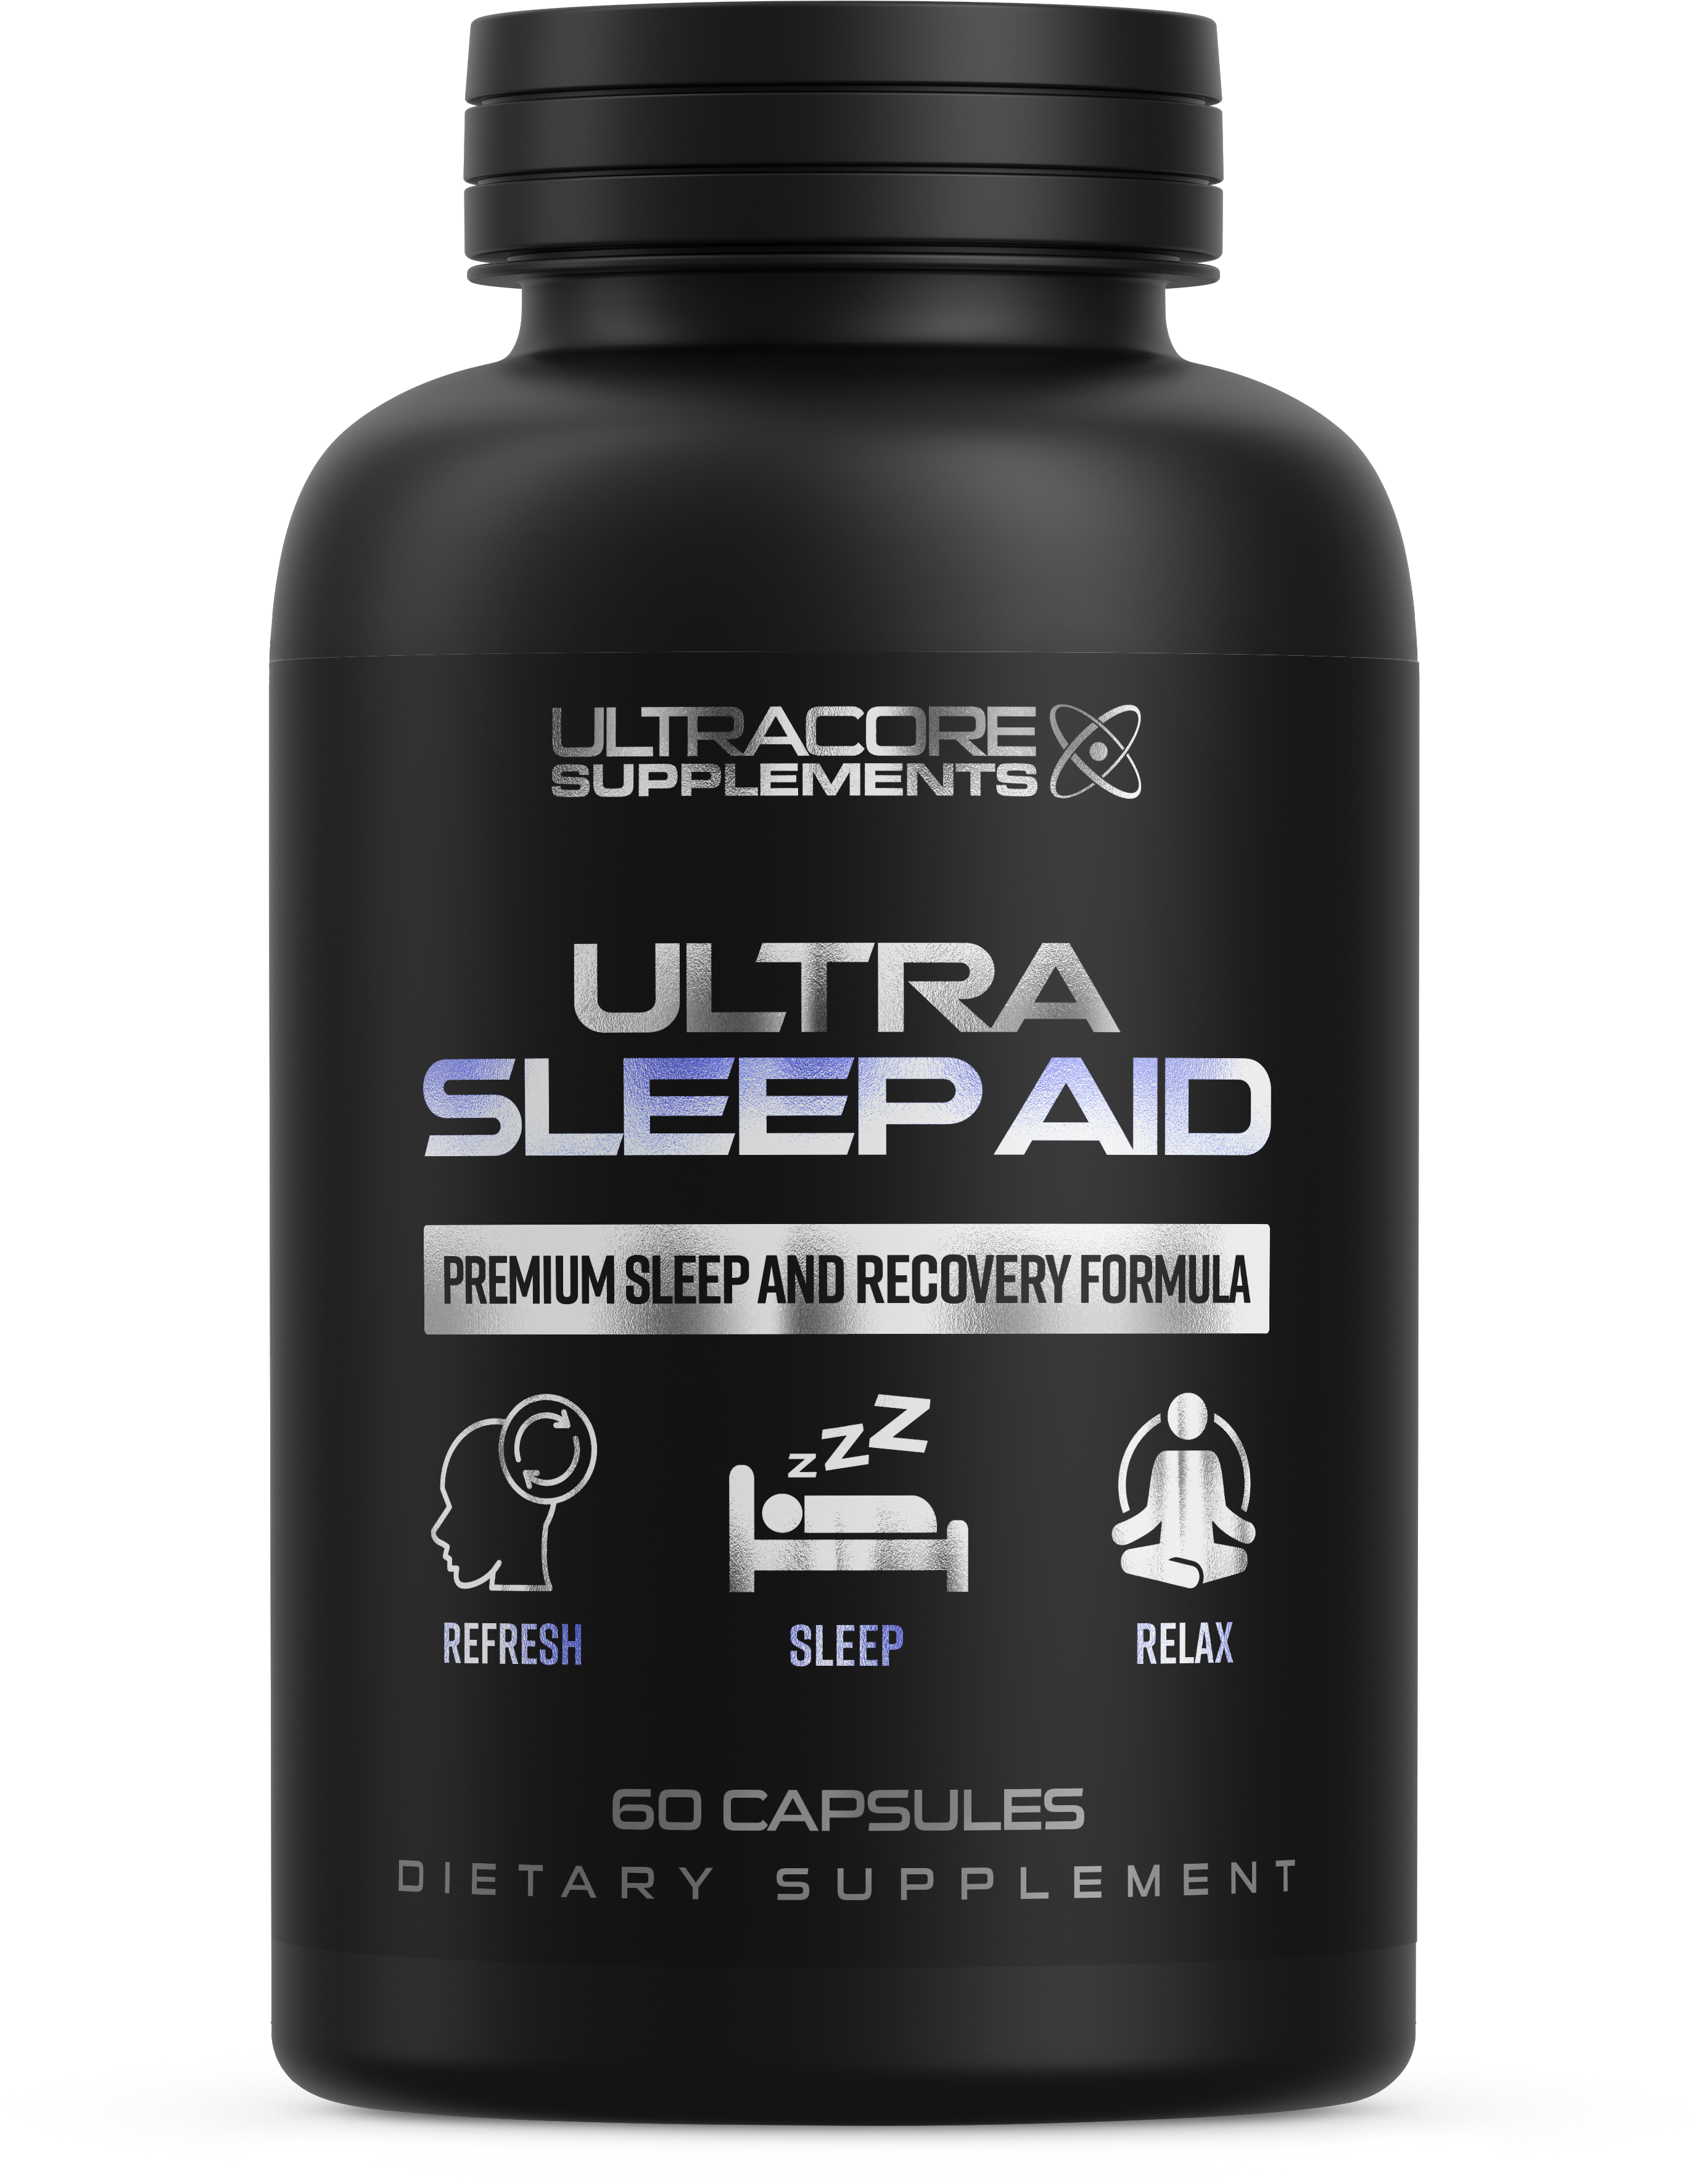 How Does Ultra Sleep Aid by UltraCore Supplements Work? 2021 FULL REVIEW